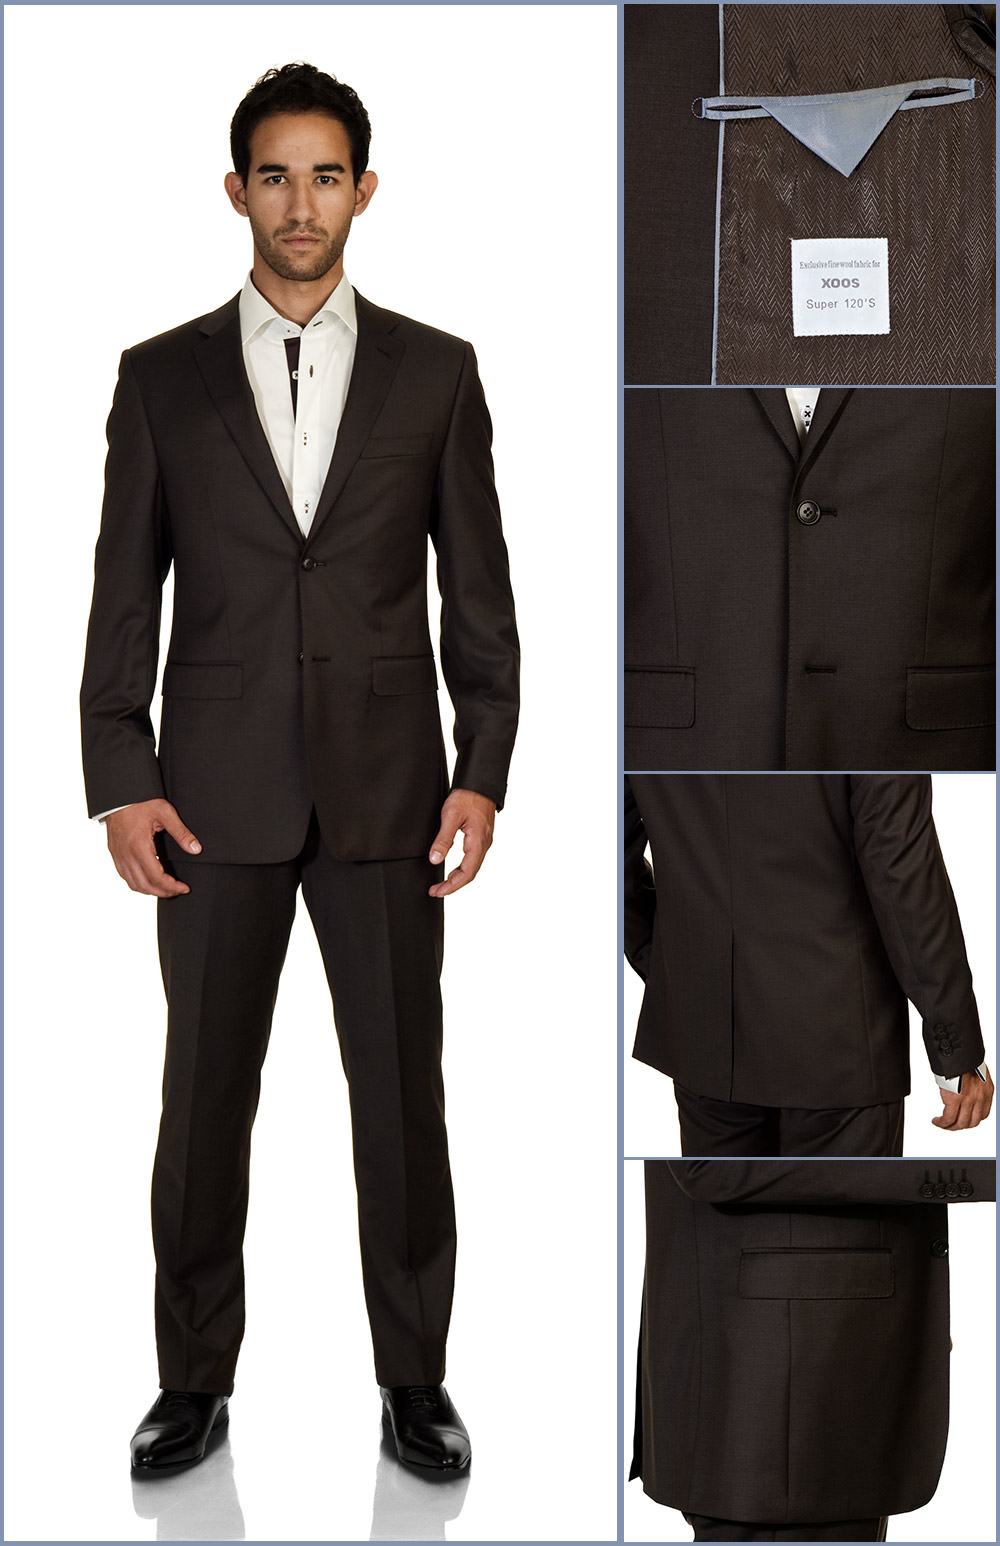 MensItaly specialize and excel in the manufacturing many products like suits, tuxedos, sports coat, slacks, silk, ties, shoes, exotic leather belts and even fine crafted cotton shirts. We strongly believe in two things: customer satisfaction and flexibility.